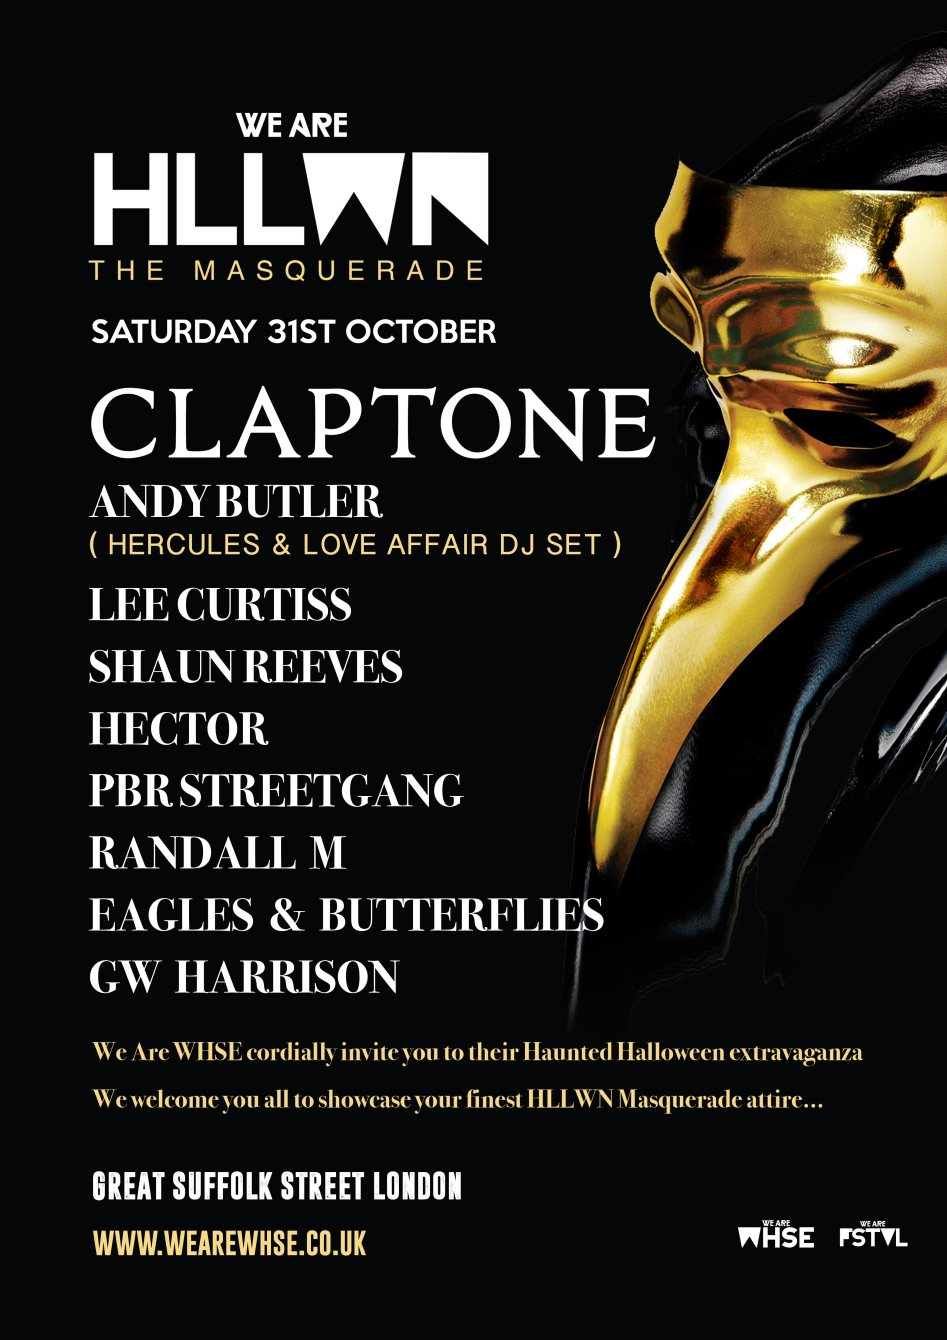 download → Eagles & Butterflies, Claptone, Hector, Lee Curtiss, Shaun Reeves, Andy Butler, GW Harrison - live at We Are HLLWN, Great Suffolk Street Warehouse - 31-Oct-2015